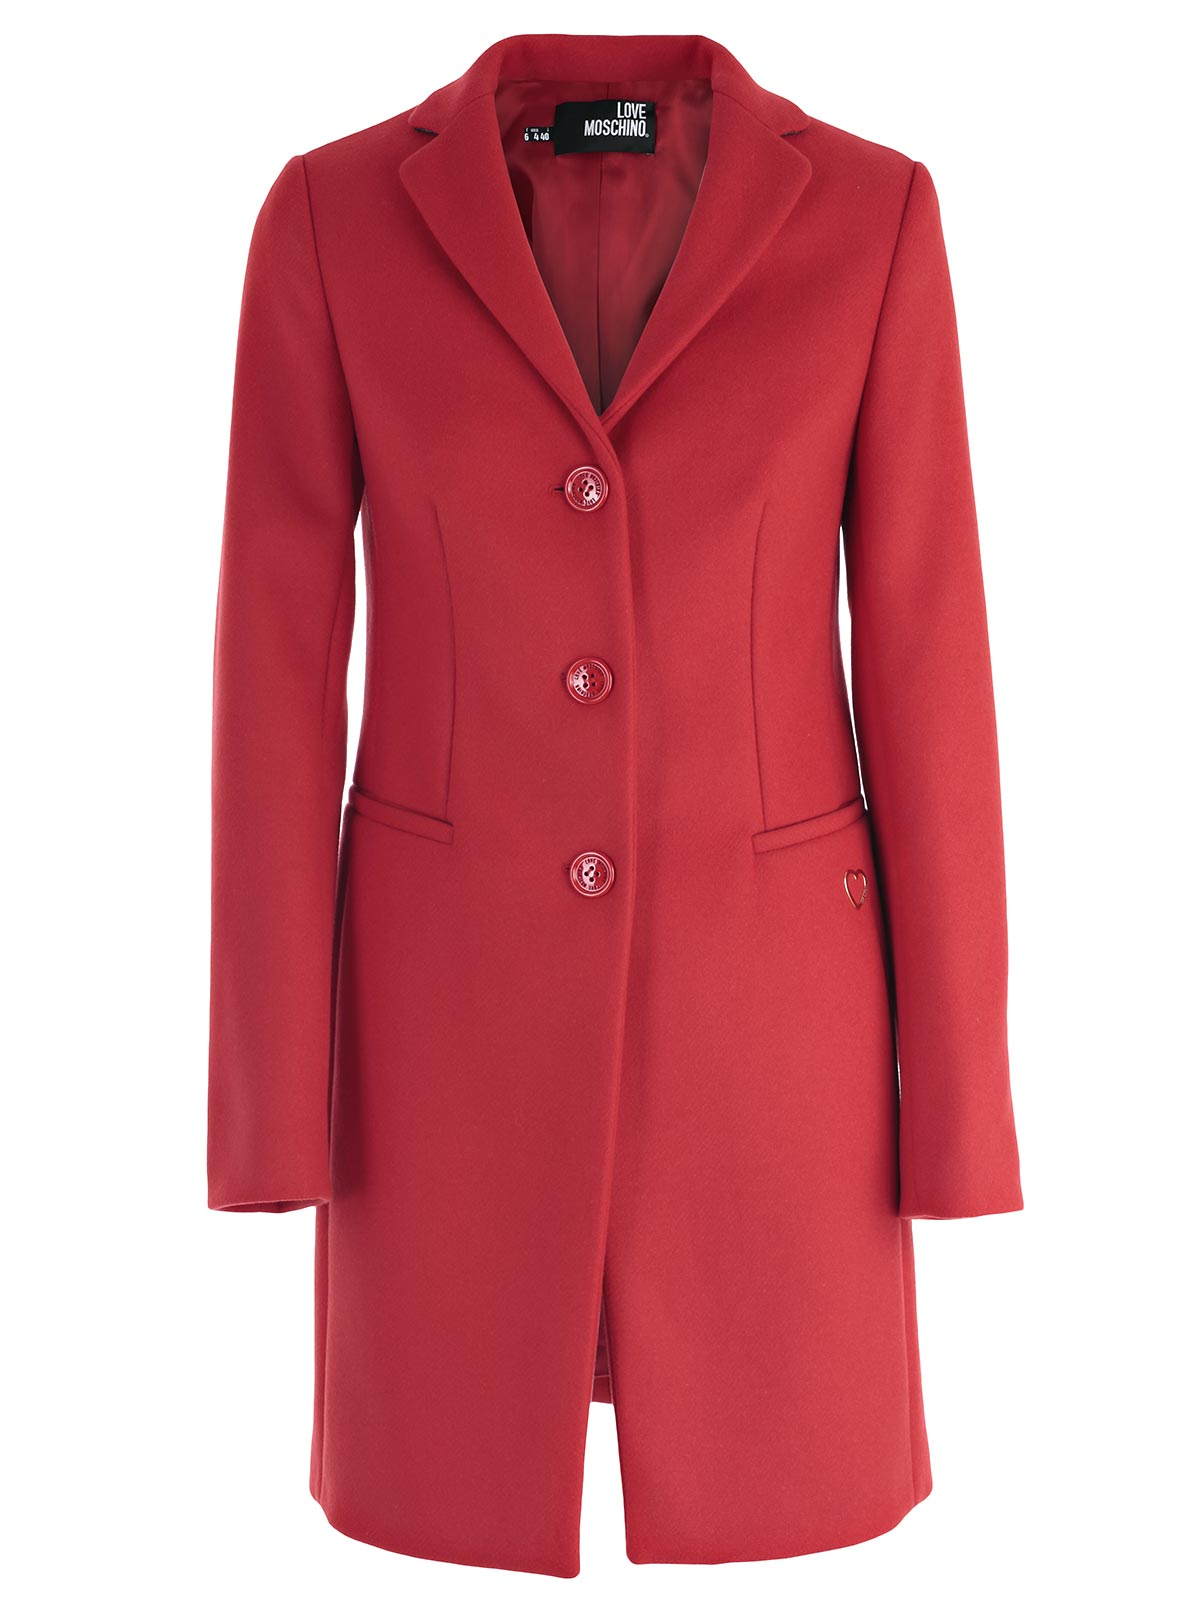 Padded Walls Love Moschino Trench Amp Raincoat Wk40681t8623 097 Red